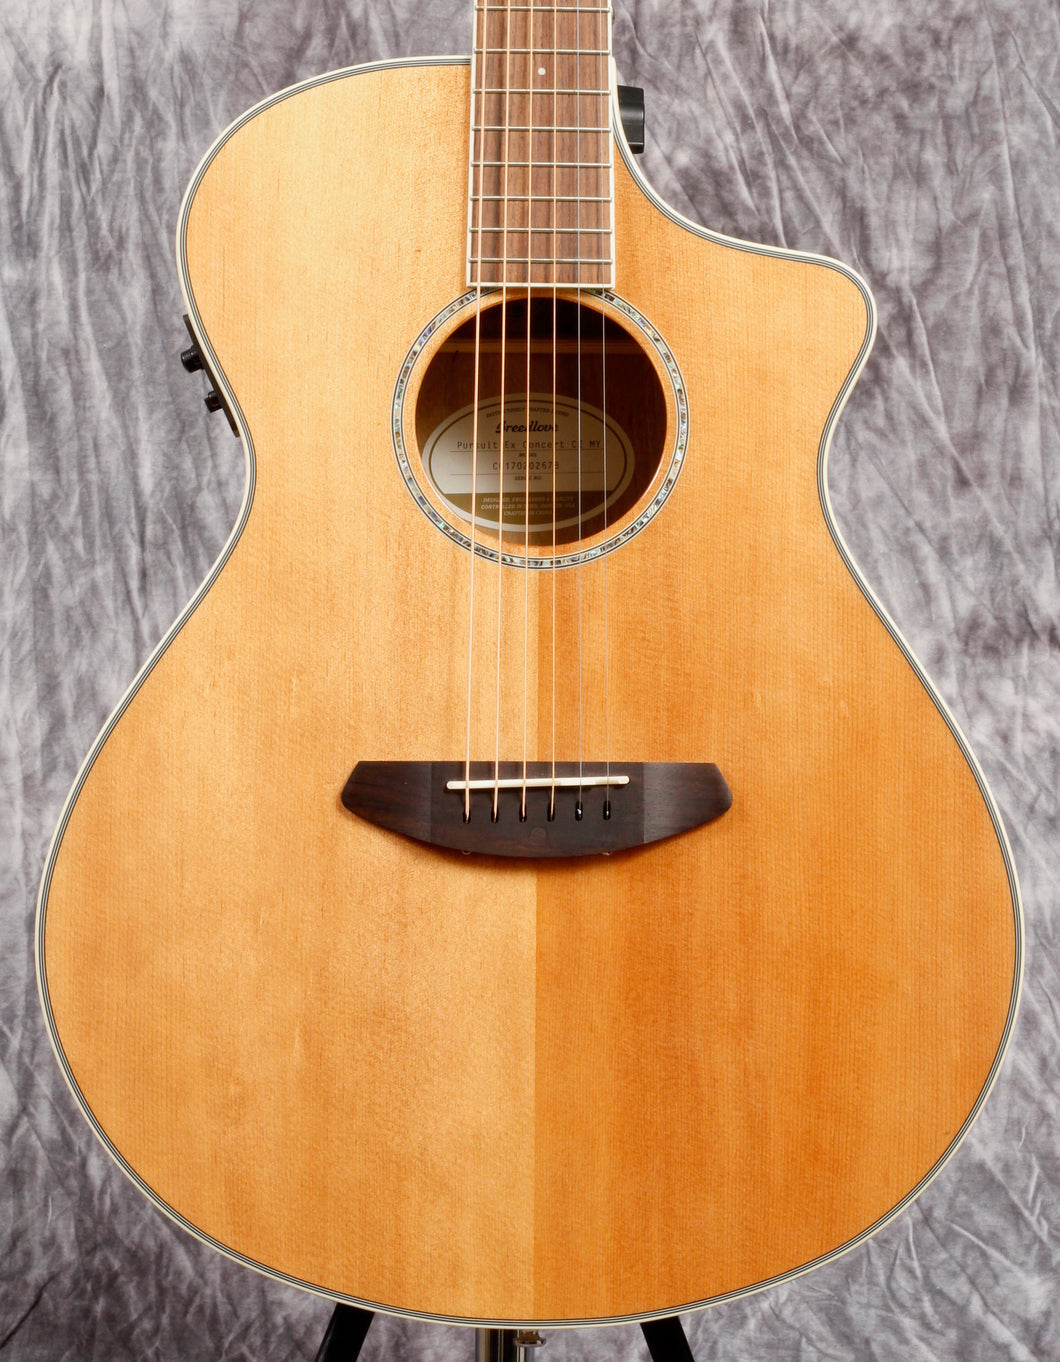 Breedlove Pursuit Exotic Concert CE Myrtlewood (Used)